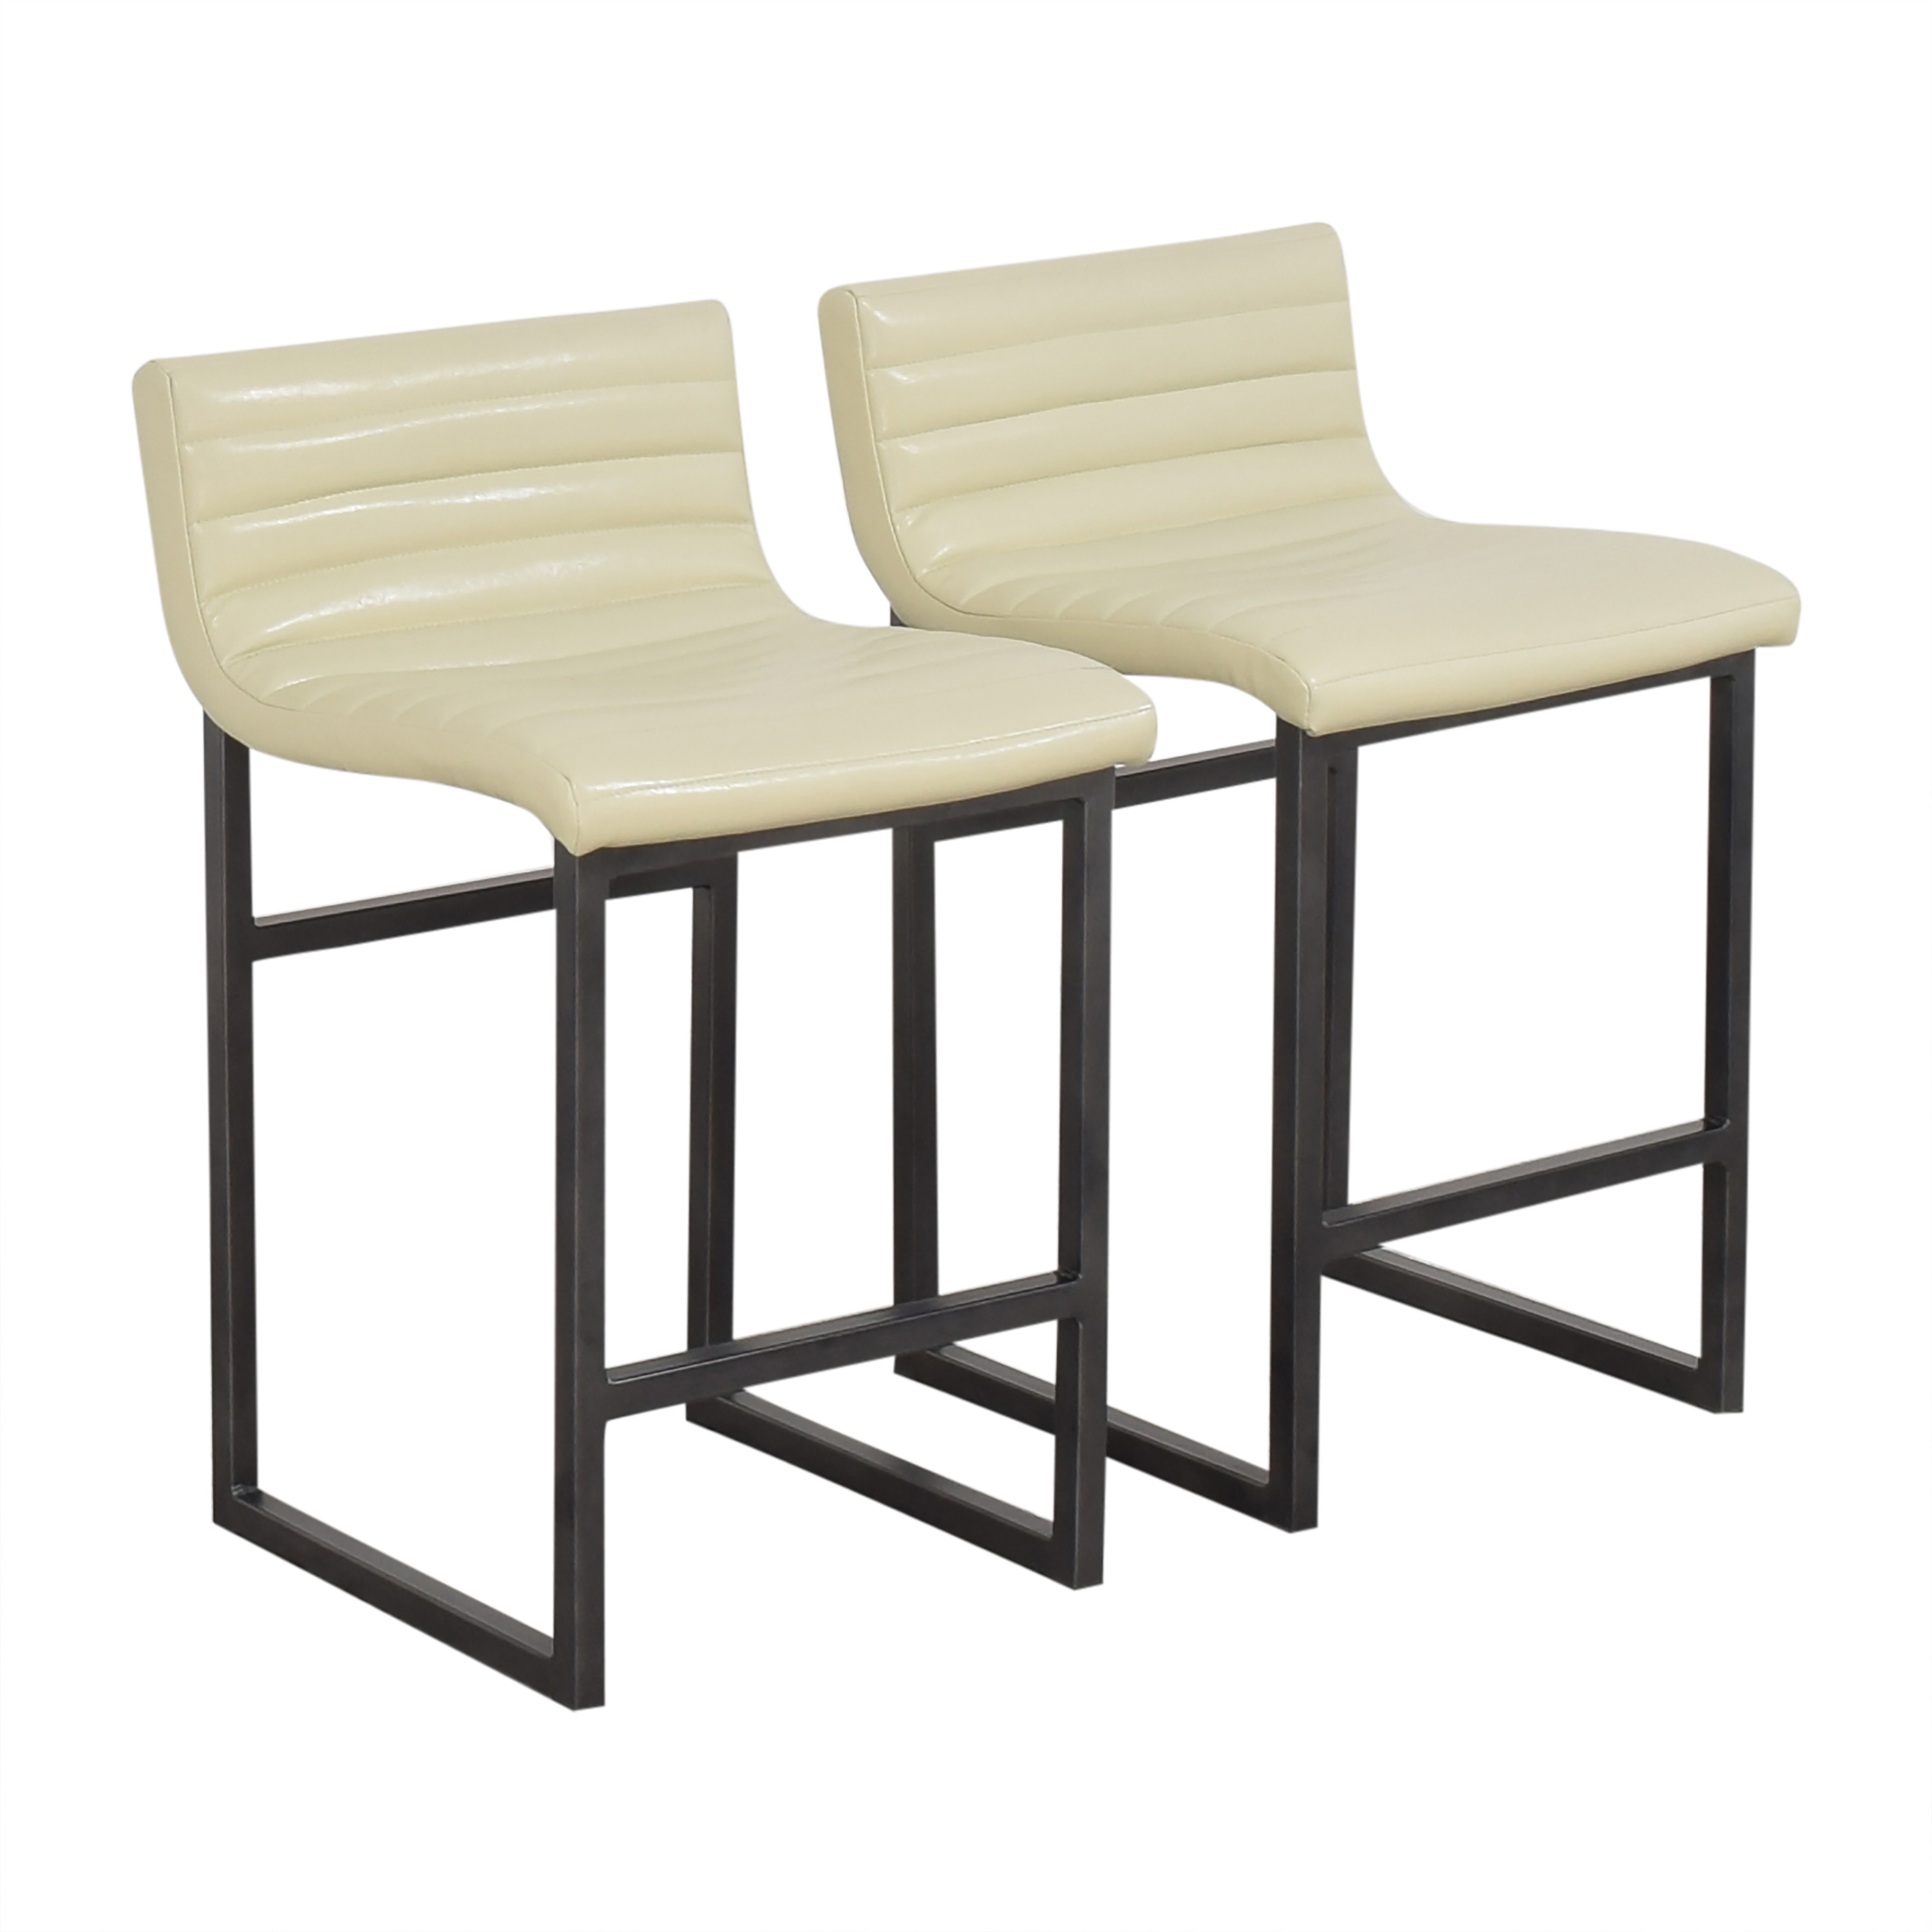 Dimensions Dimensions Furniture Counter Stools